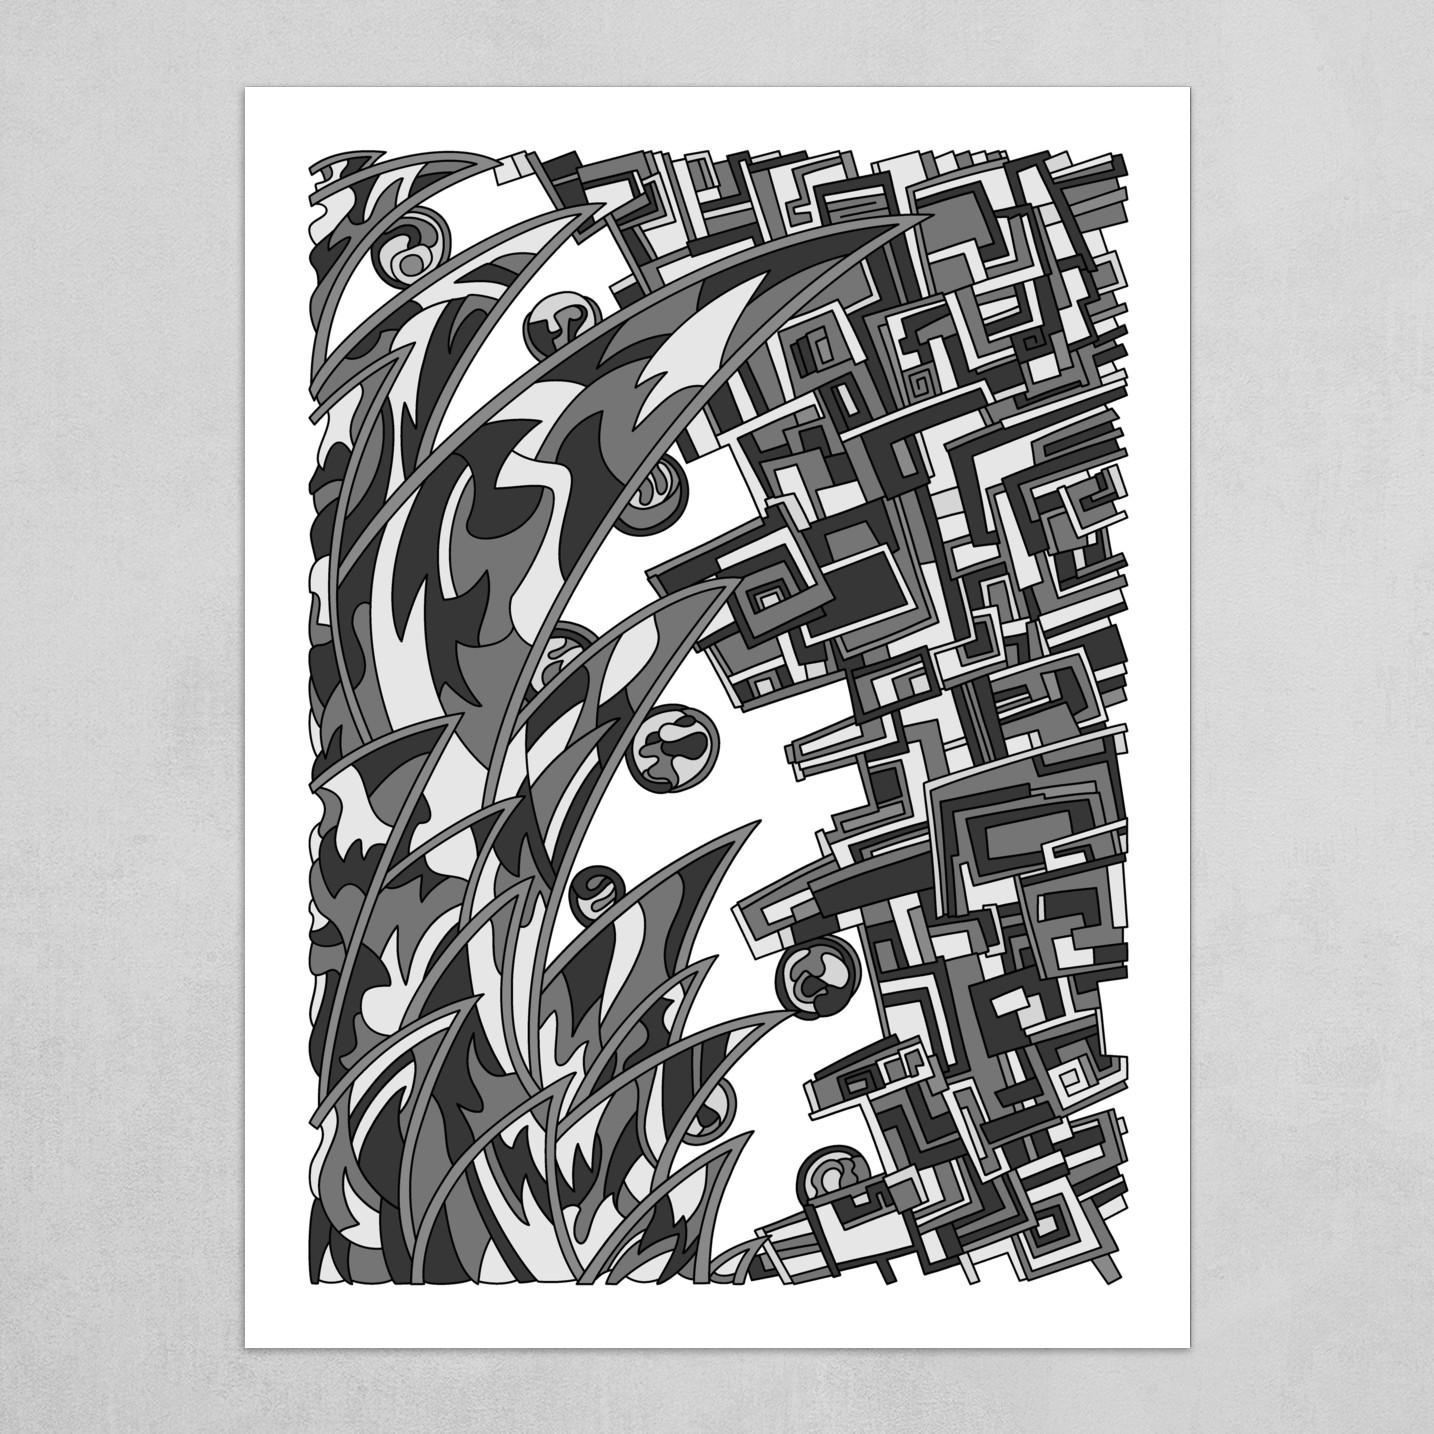 Wandering Abstract Line Art 18: Grayscale